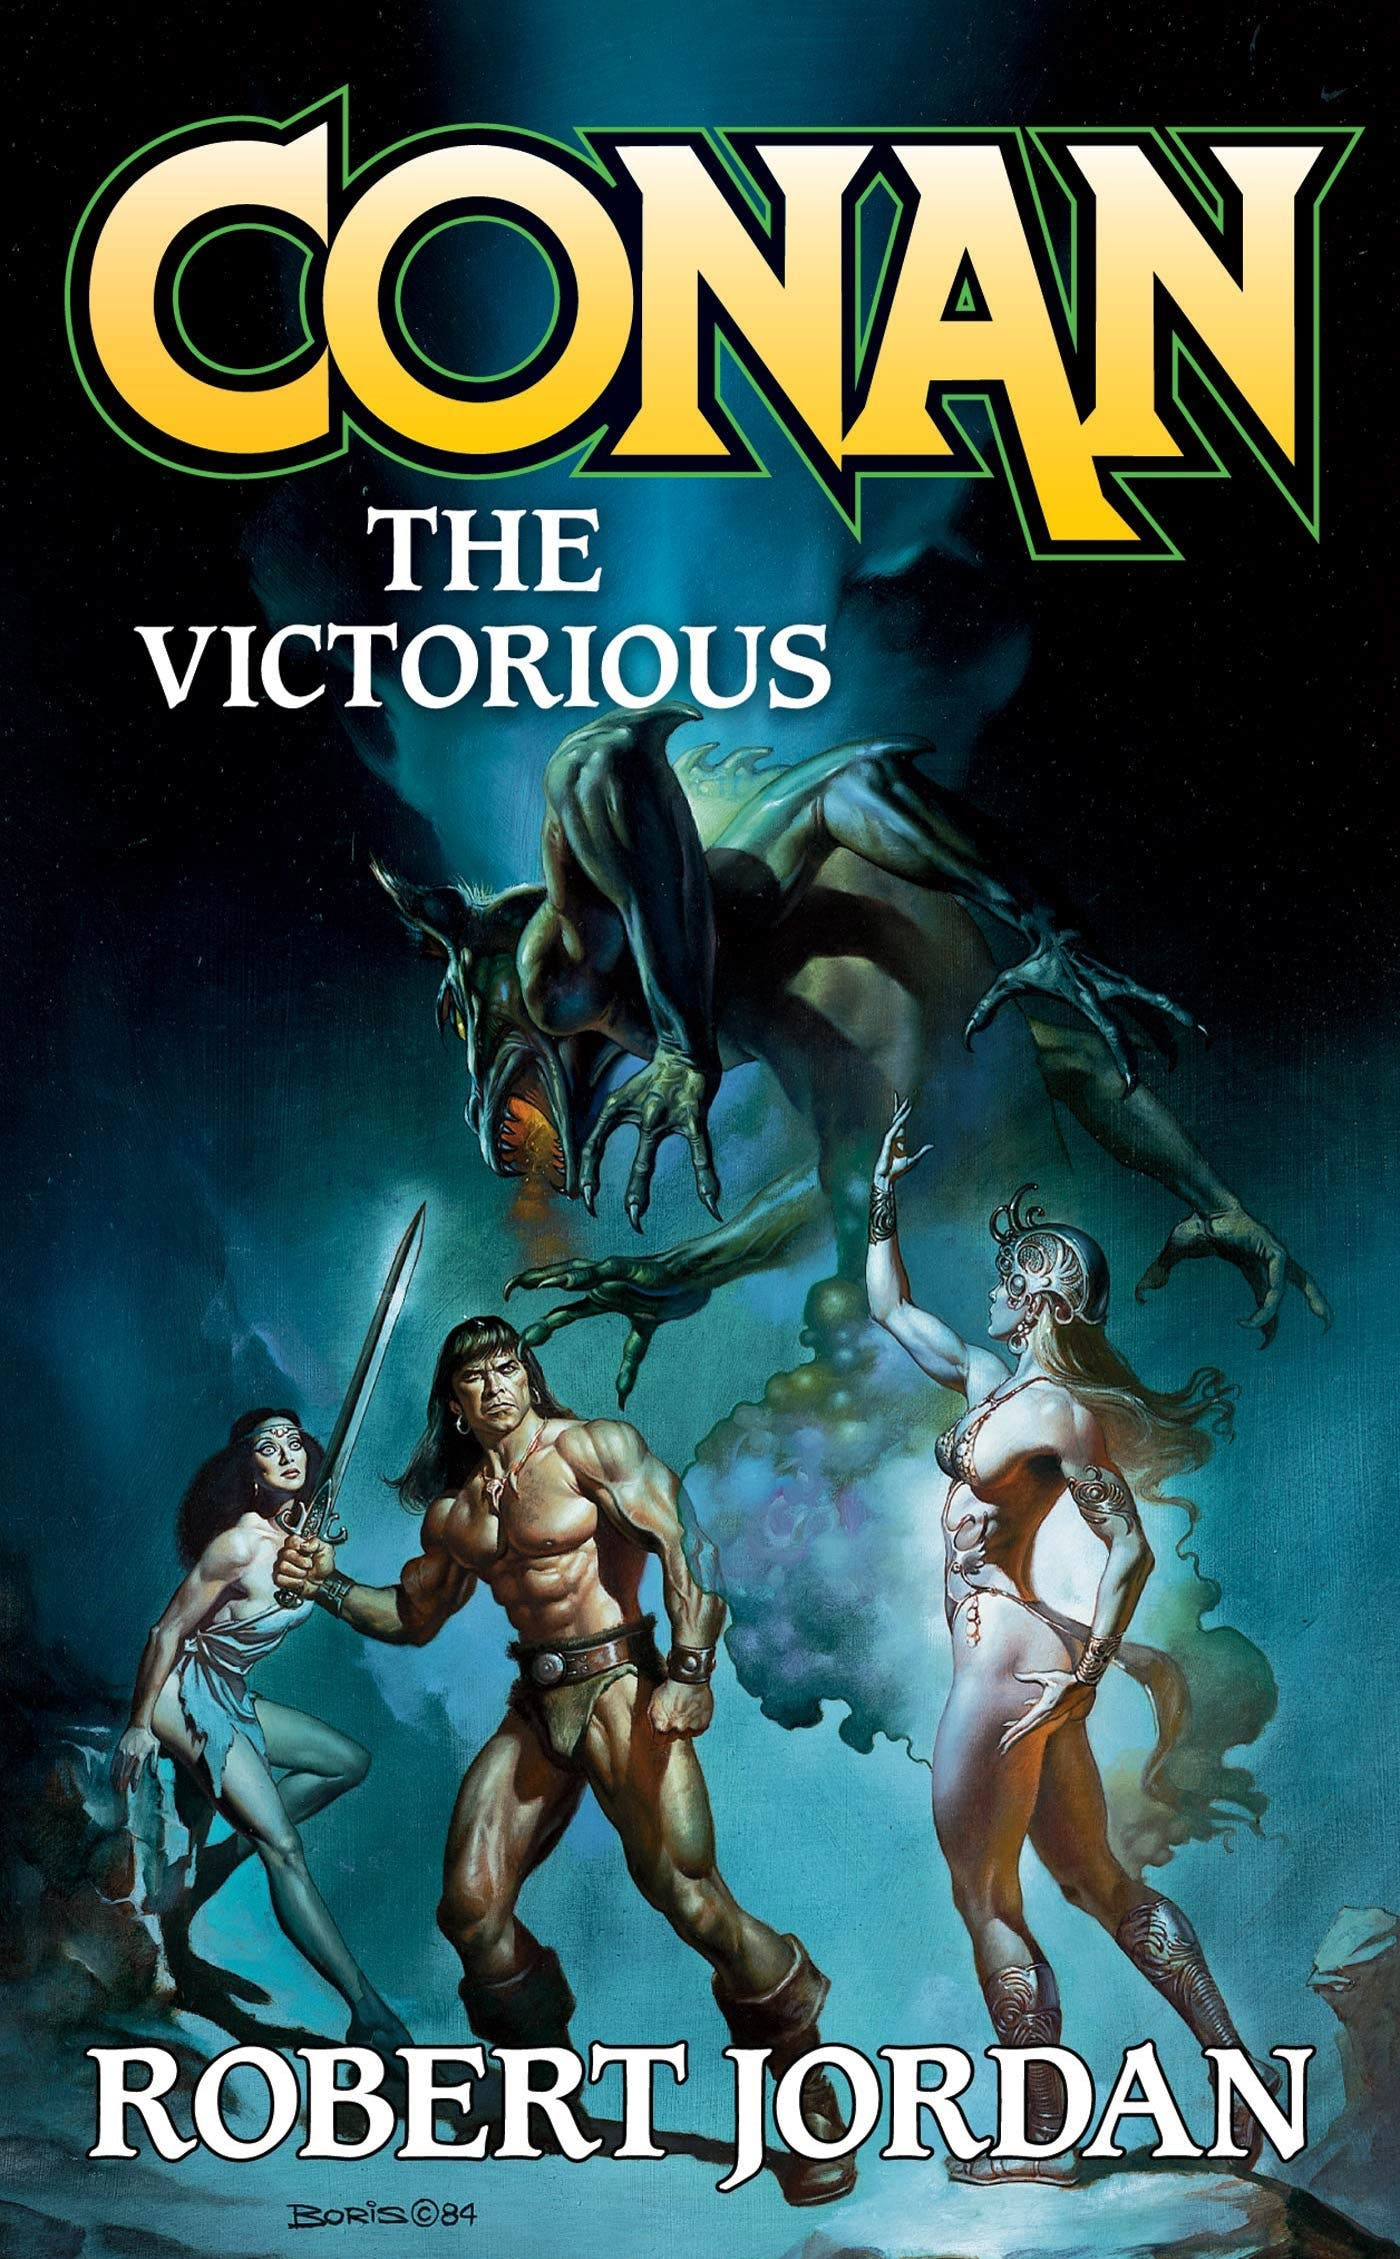 Image of Conan the Victorious